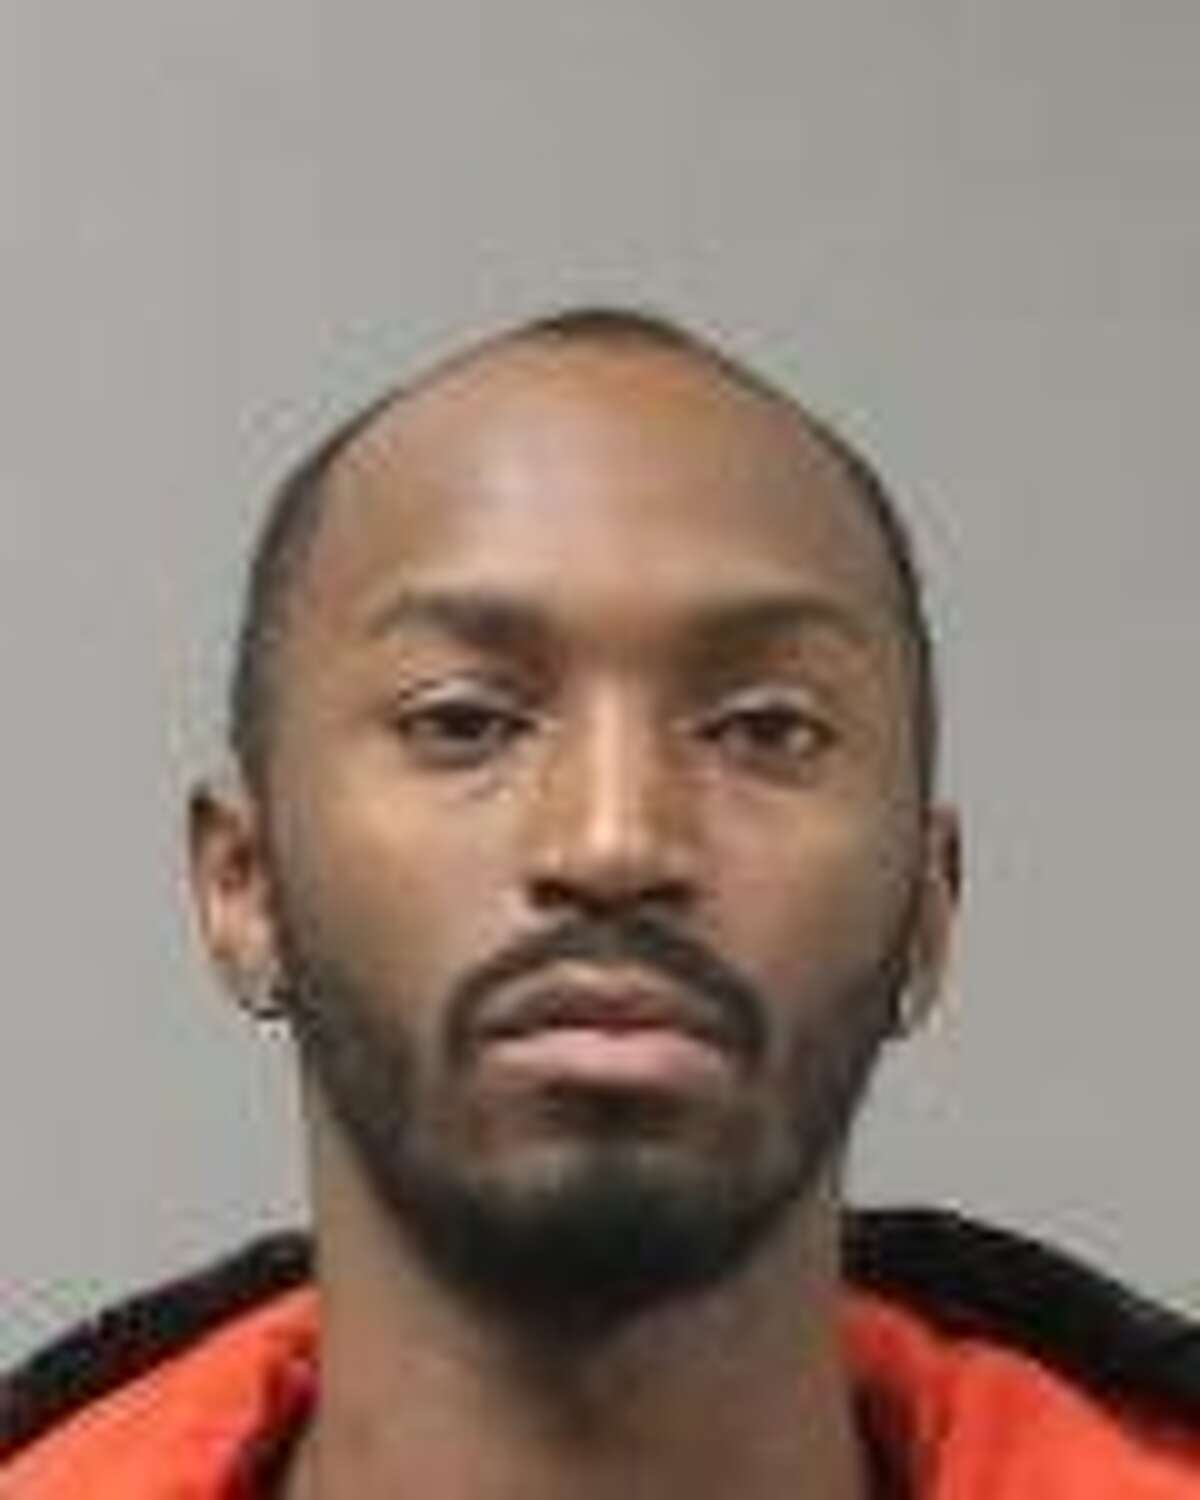 Kareem Brown, 28, was arrested Monday, Feb. 11, for reckless endangerment, unauthorized use of a motor vehicle and numerous traffic violations, State Police said.